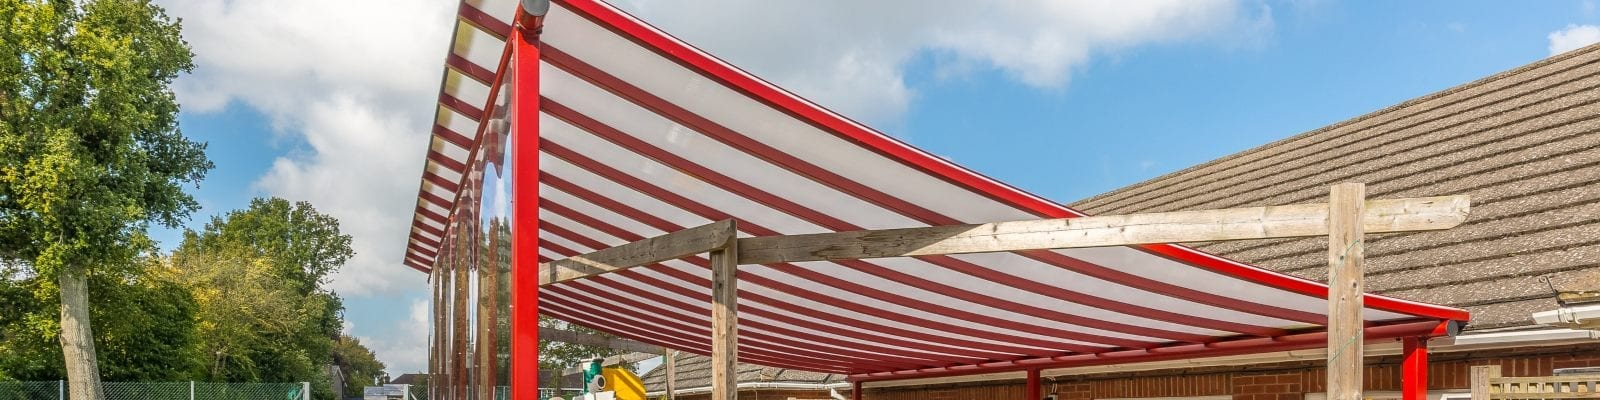 Playground canopy we installed at The Beacon School